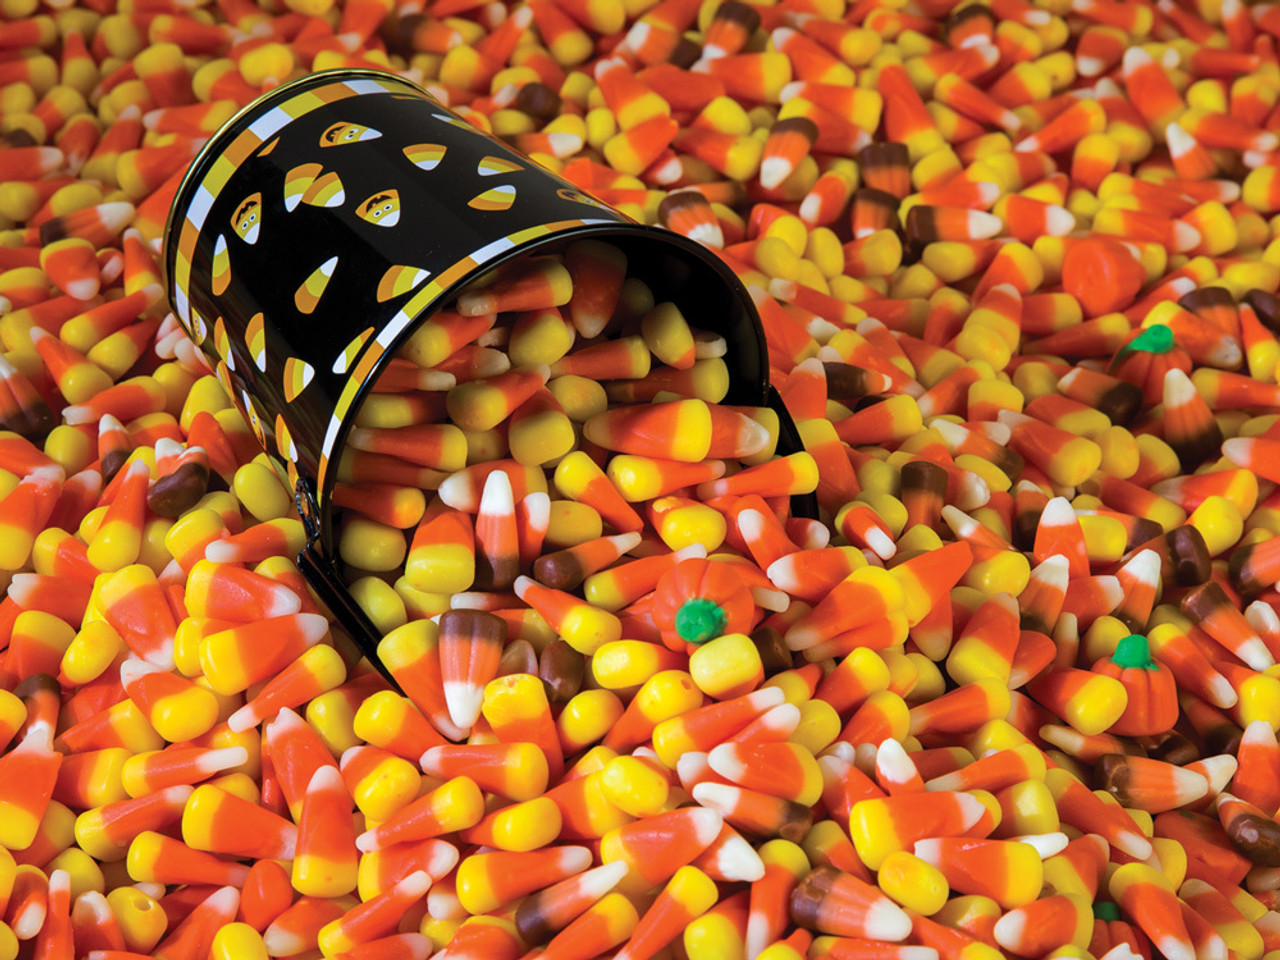 candy corn 550pc jigsaw puzzle by vermont christmas company - Christmas Candy Corn